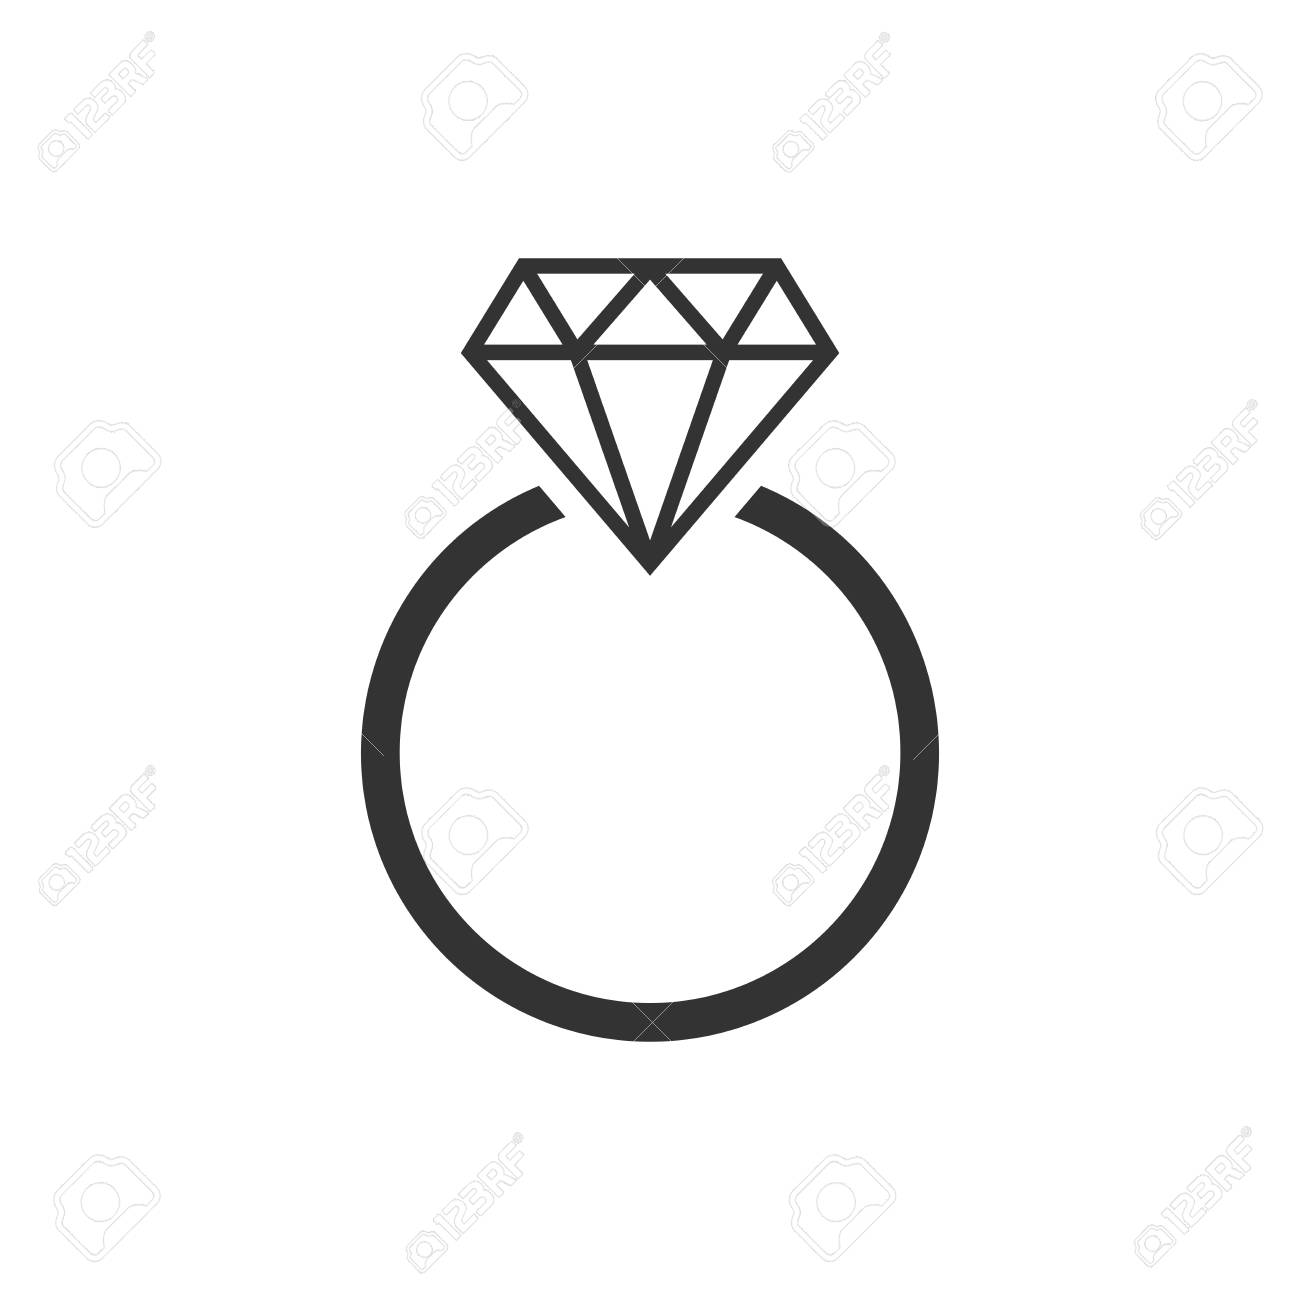 Engagement Ring With Diamond Vector Icon In Flat Style Wedding Royalty Free Cliparts Vectors And Stock Illustration Image 99400619